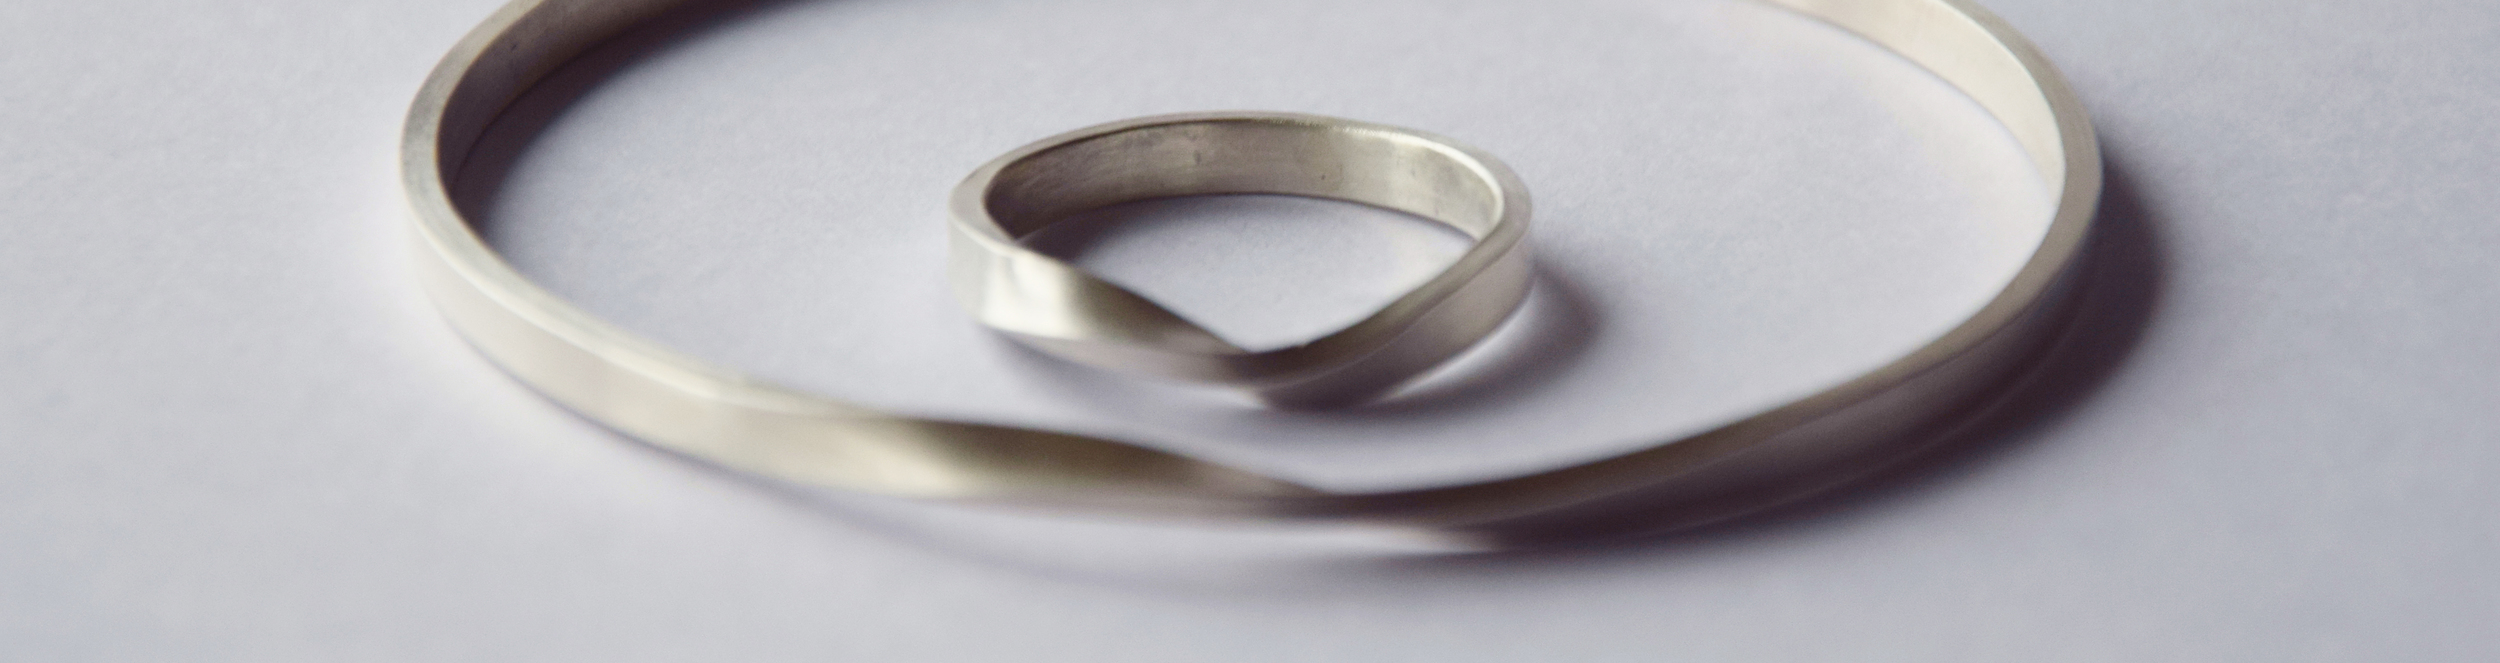 Sterling silver twisted ring and bangle 3.jpg